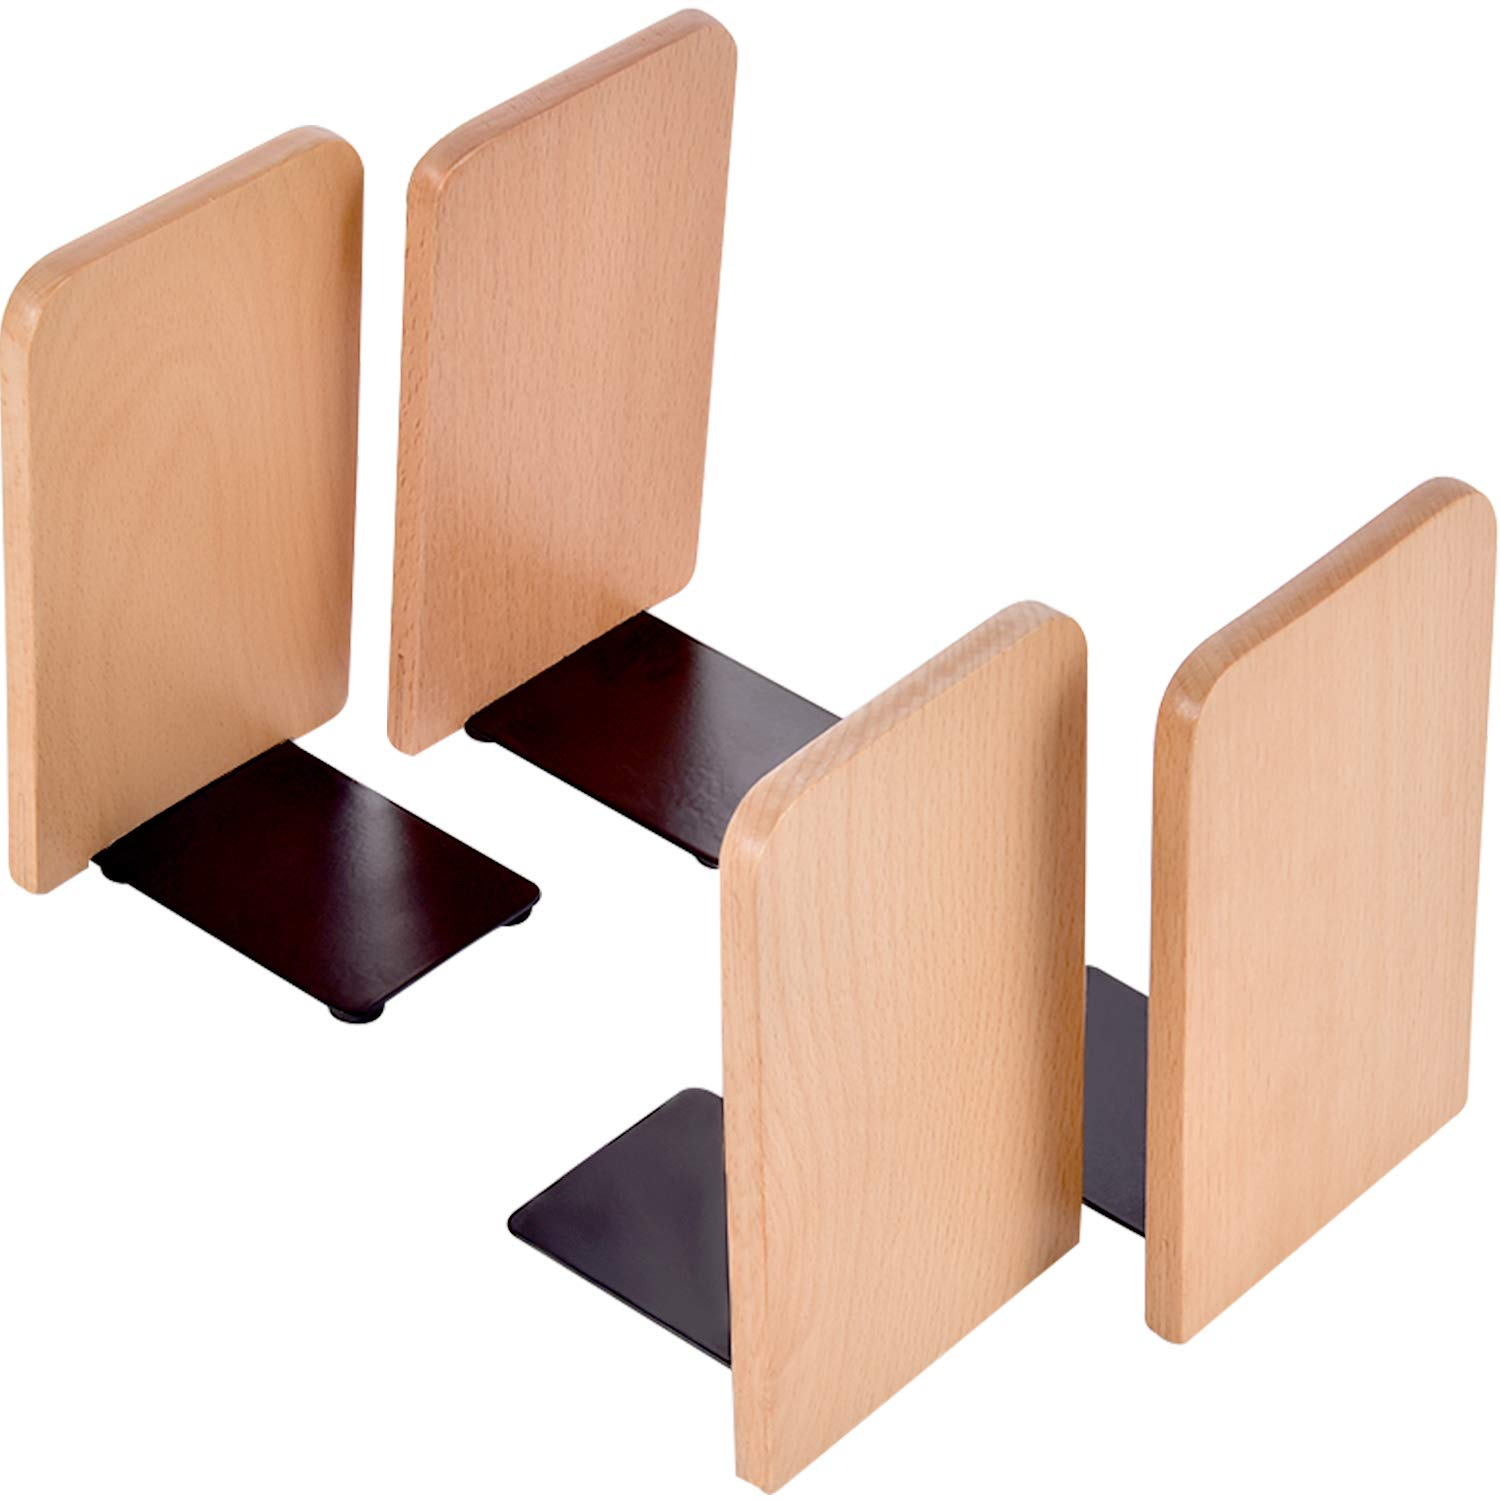 TecUnite Wood Bookends Beech Wood Art Bookends Office Hand Crafted Heavy Wooden Bookend for Book Stand (4)